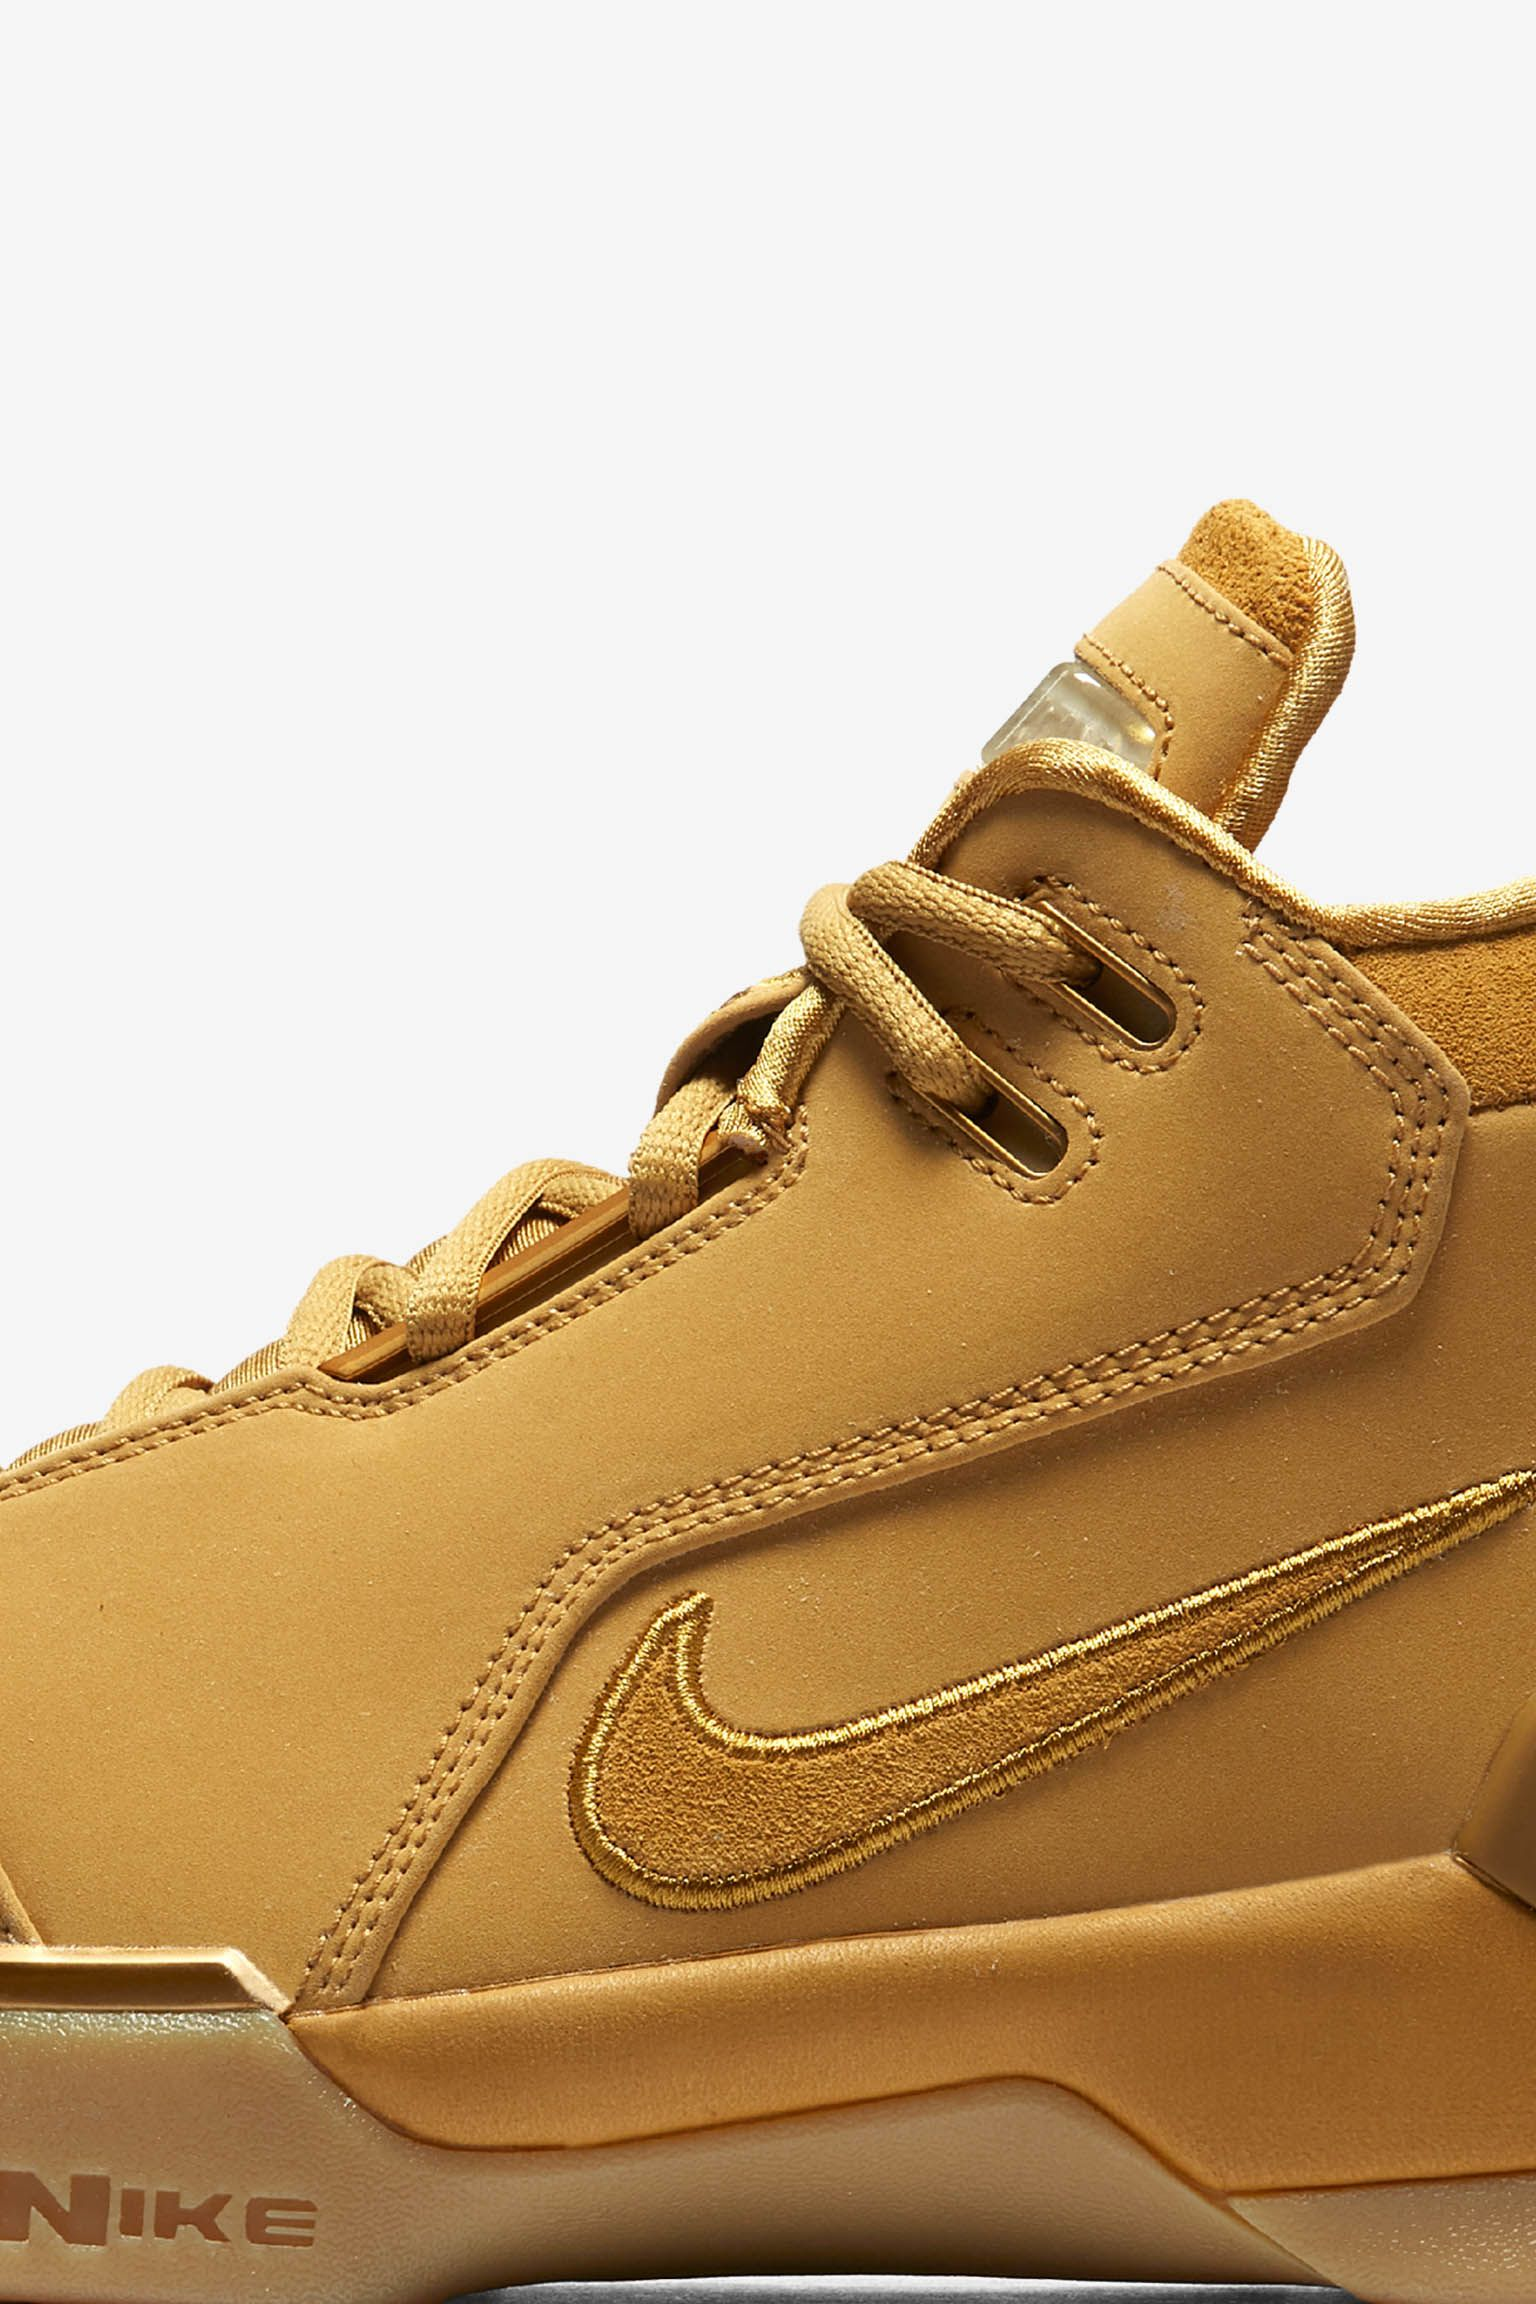 Nike Air Zoom Generation 'Wheat Gold' Release Date